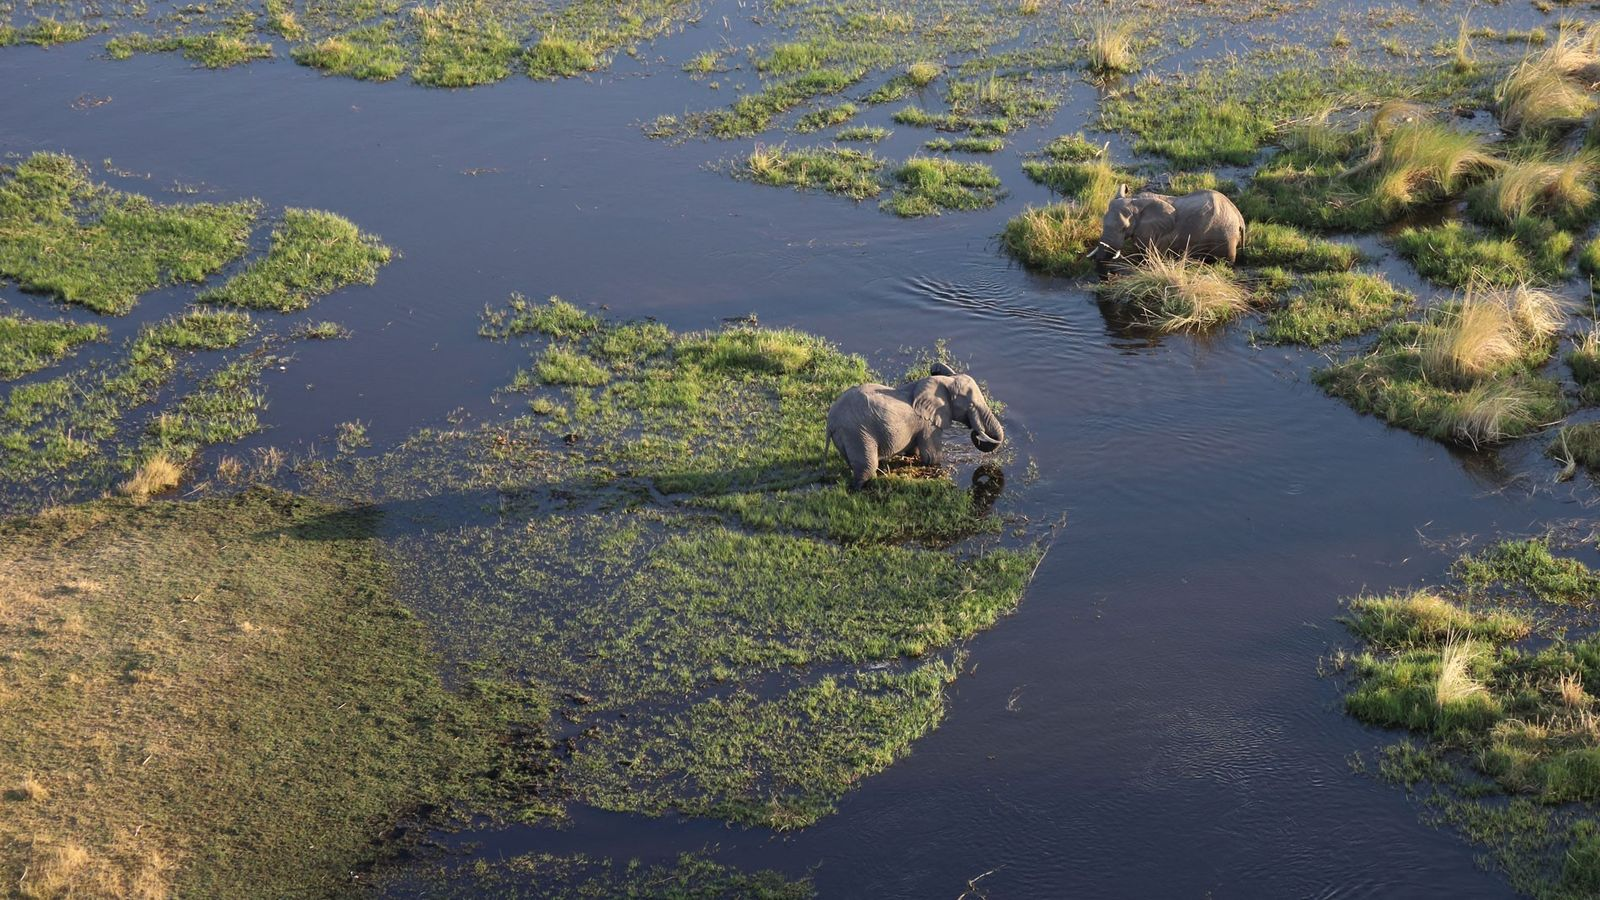 Aerial view of the waterways and islands of the Okavango Delta, with grazing elephants.